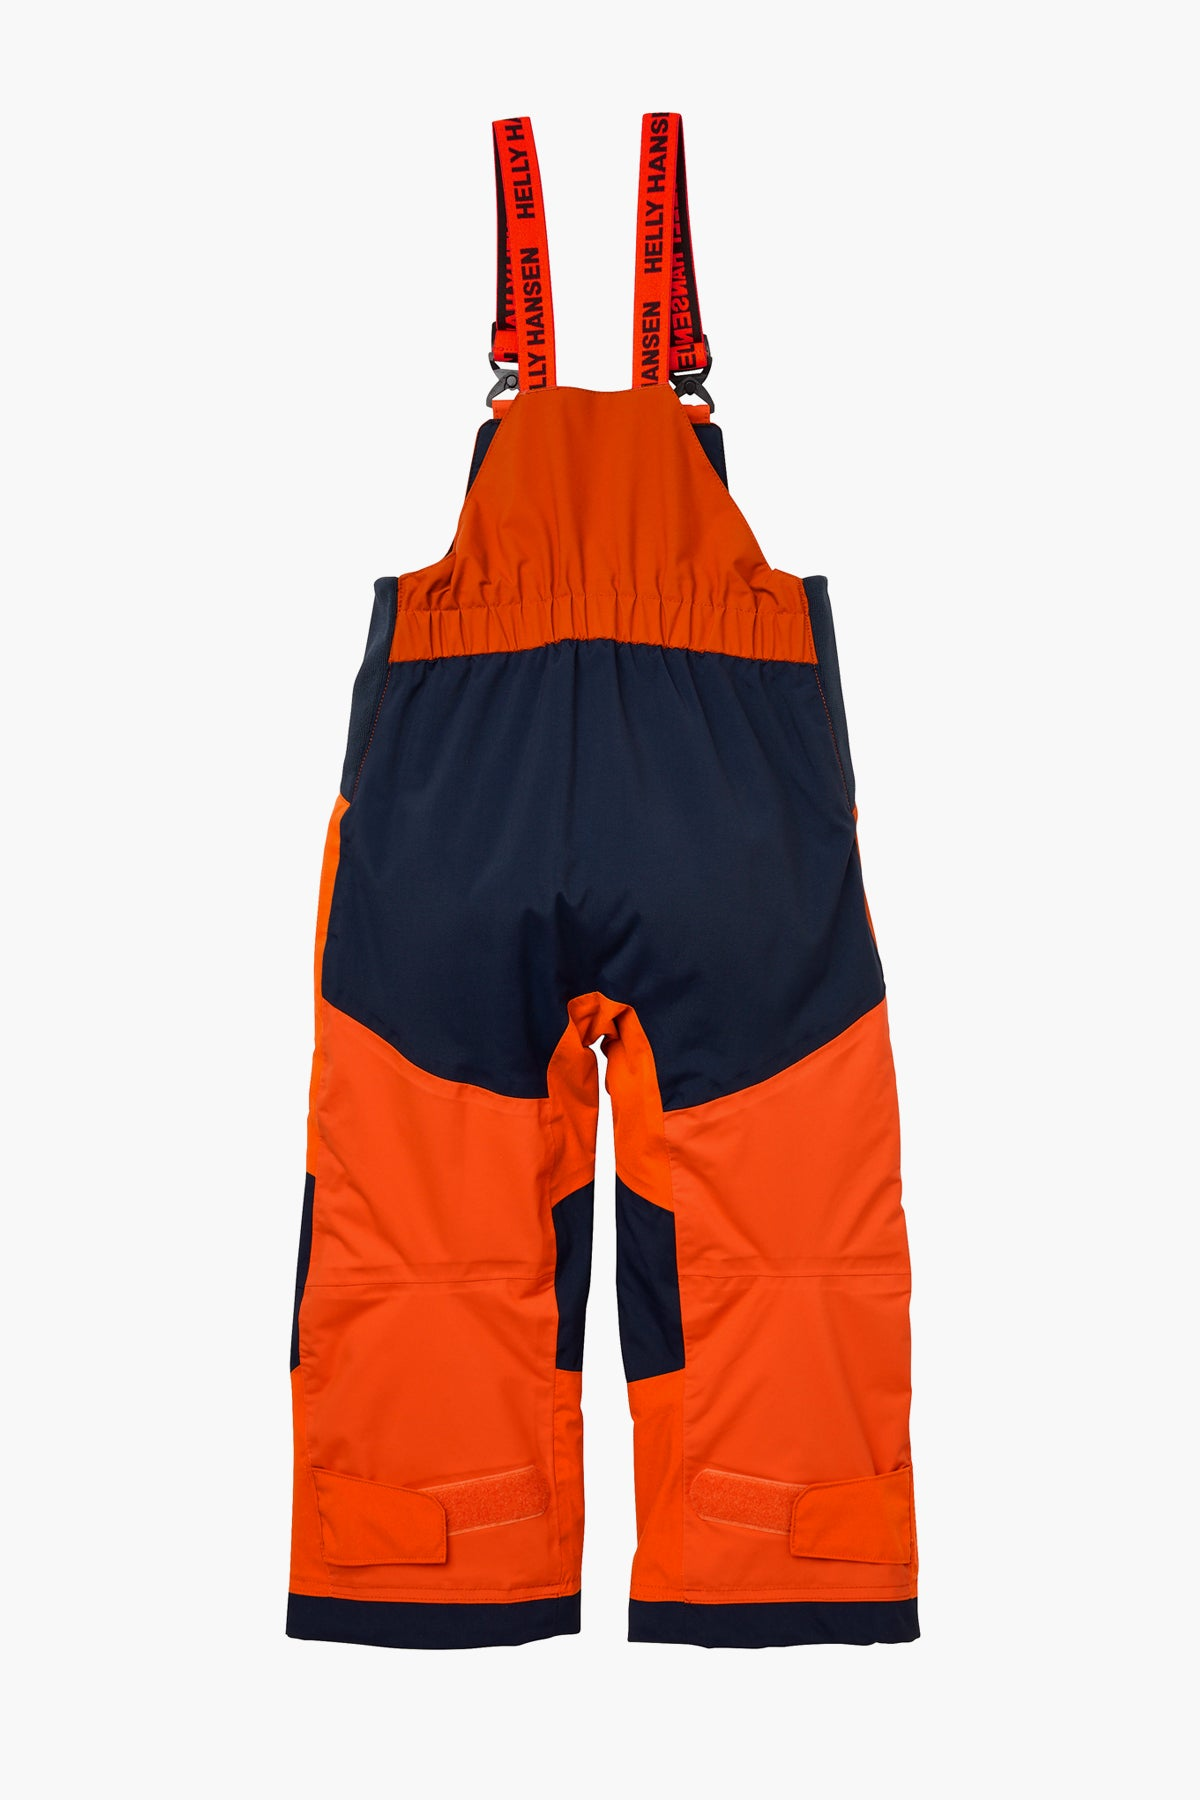 Helly Hansen Kids Snowpants Rider 2 Bib - Neon Orange